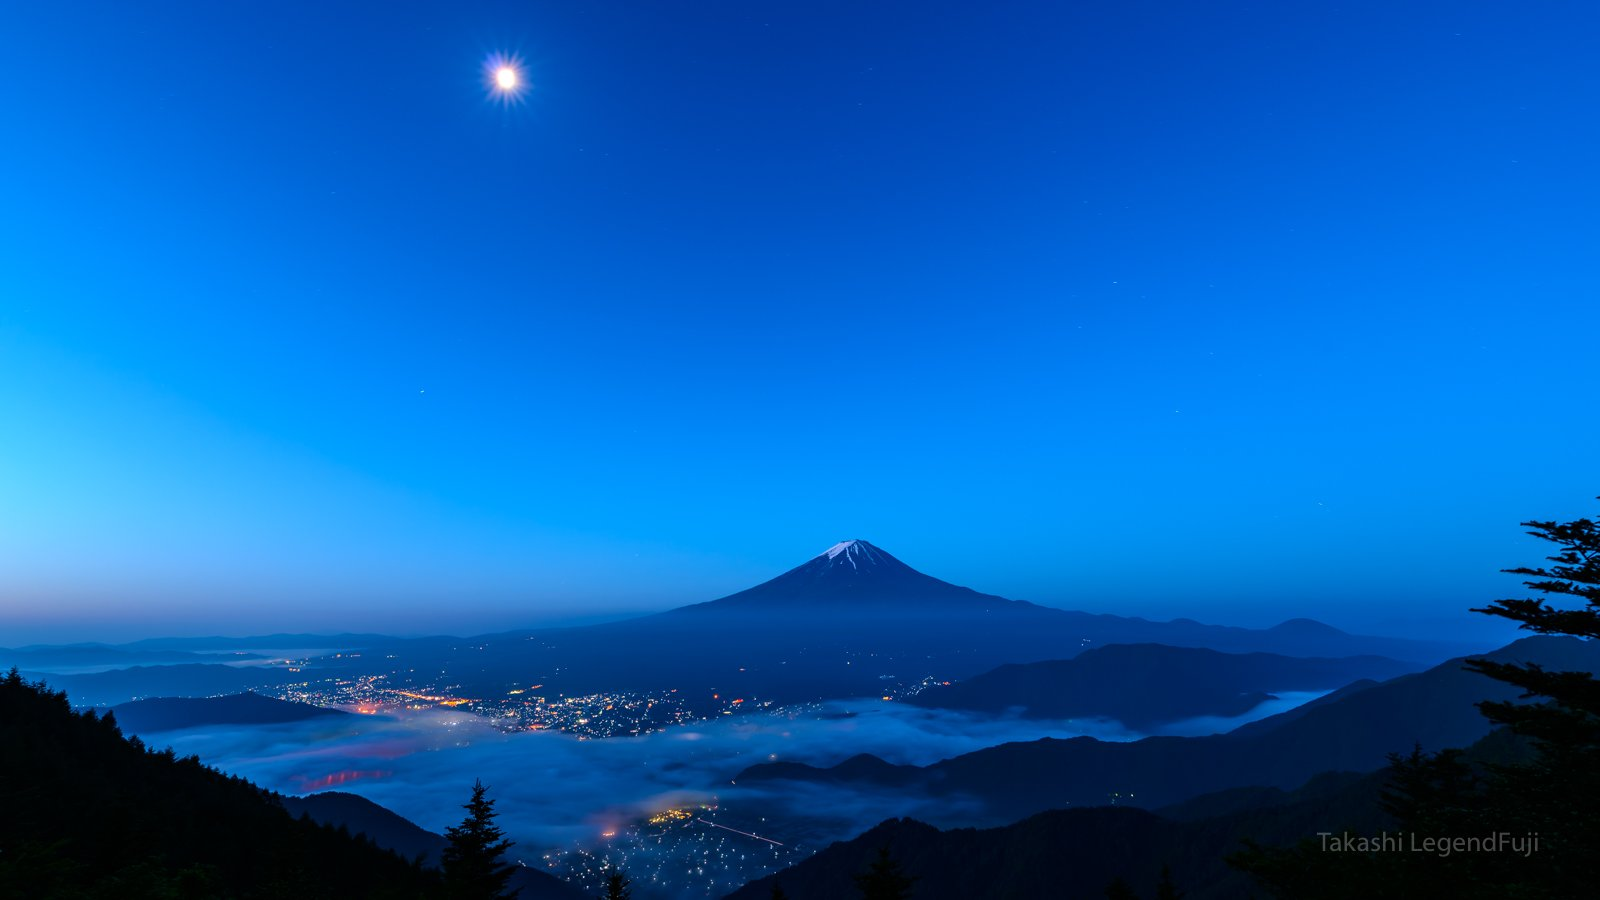 Fuji,mountain,Japan,cloud,moon,luna,sky,blue,lake,light,, Takashi